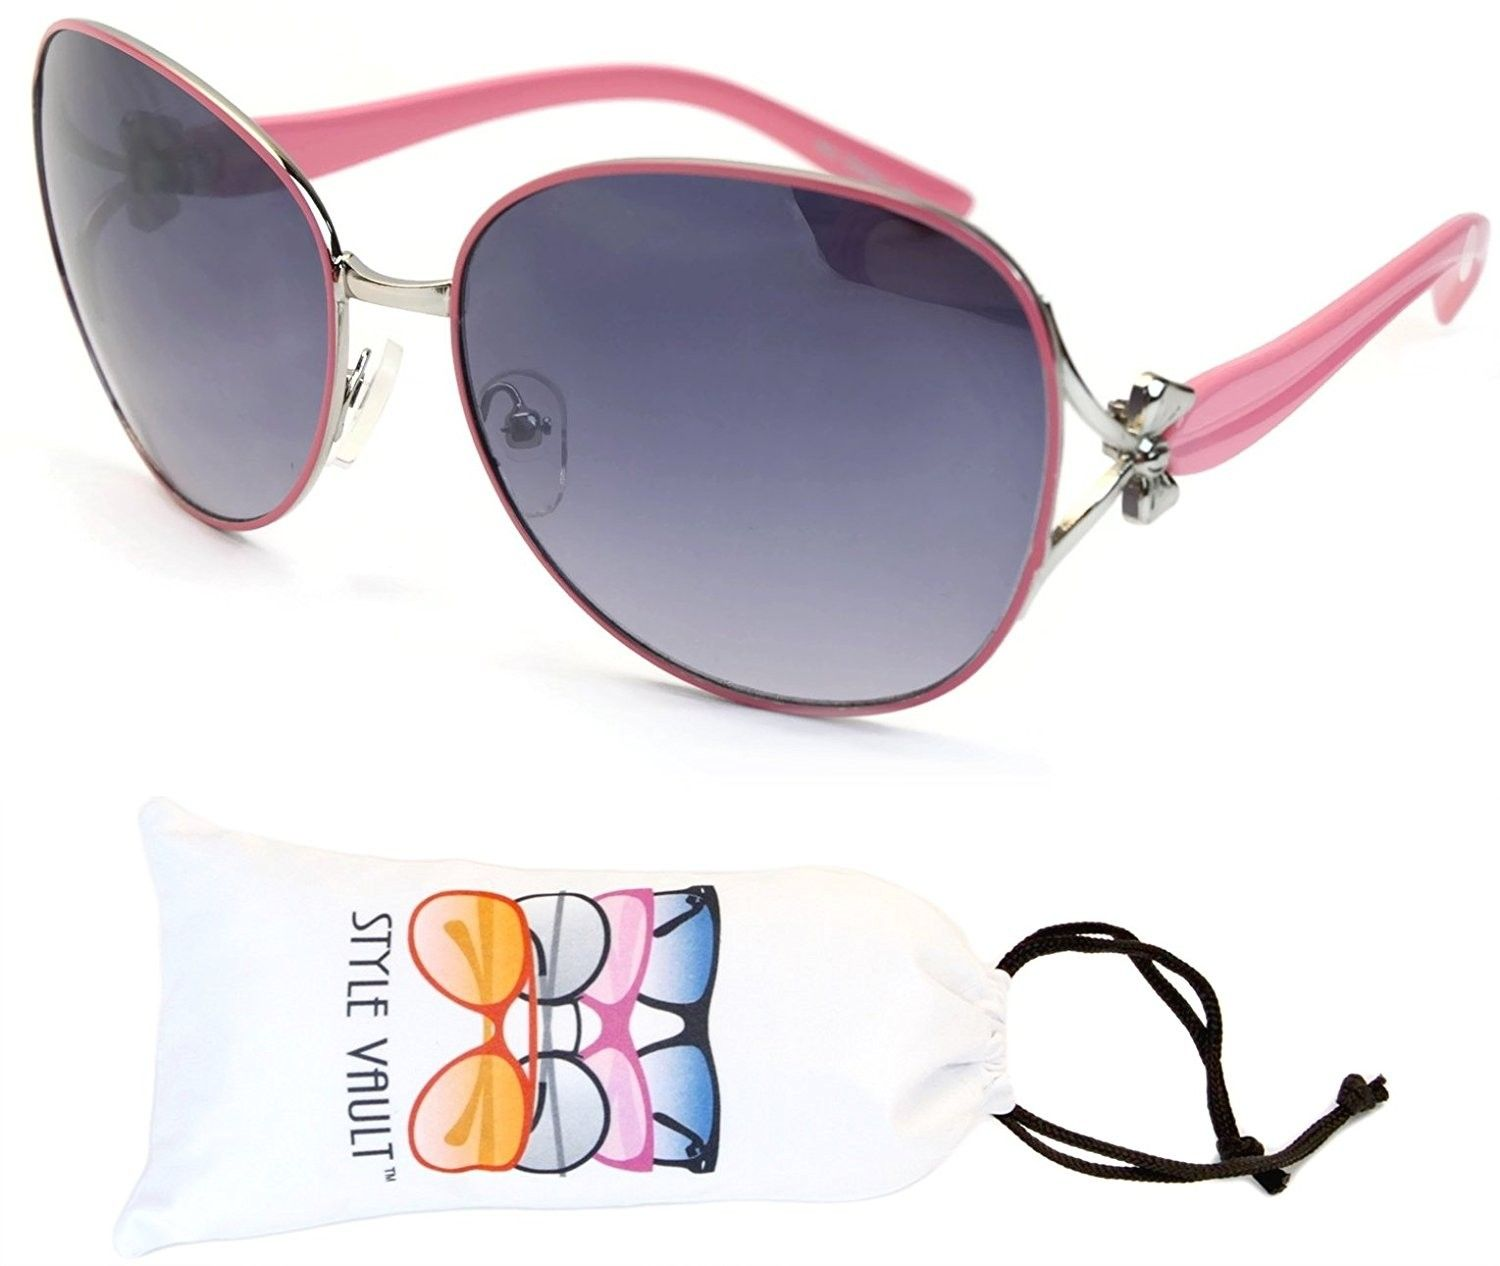 15437fe19c Wm551-vp Metal Butterfly Unique Sunglasses - O2672b Pink Silver-smoked -  C212FUAU6GX - Women s Sunglasses